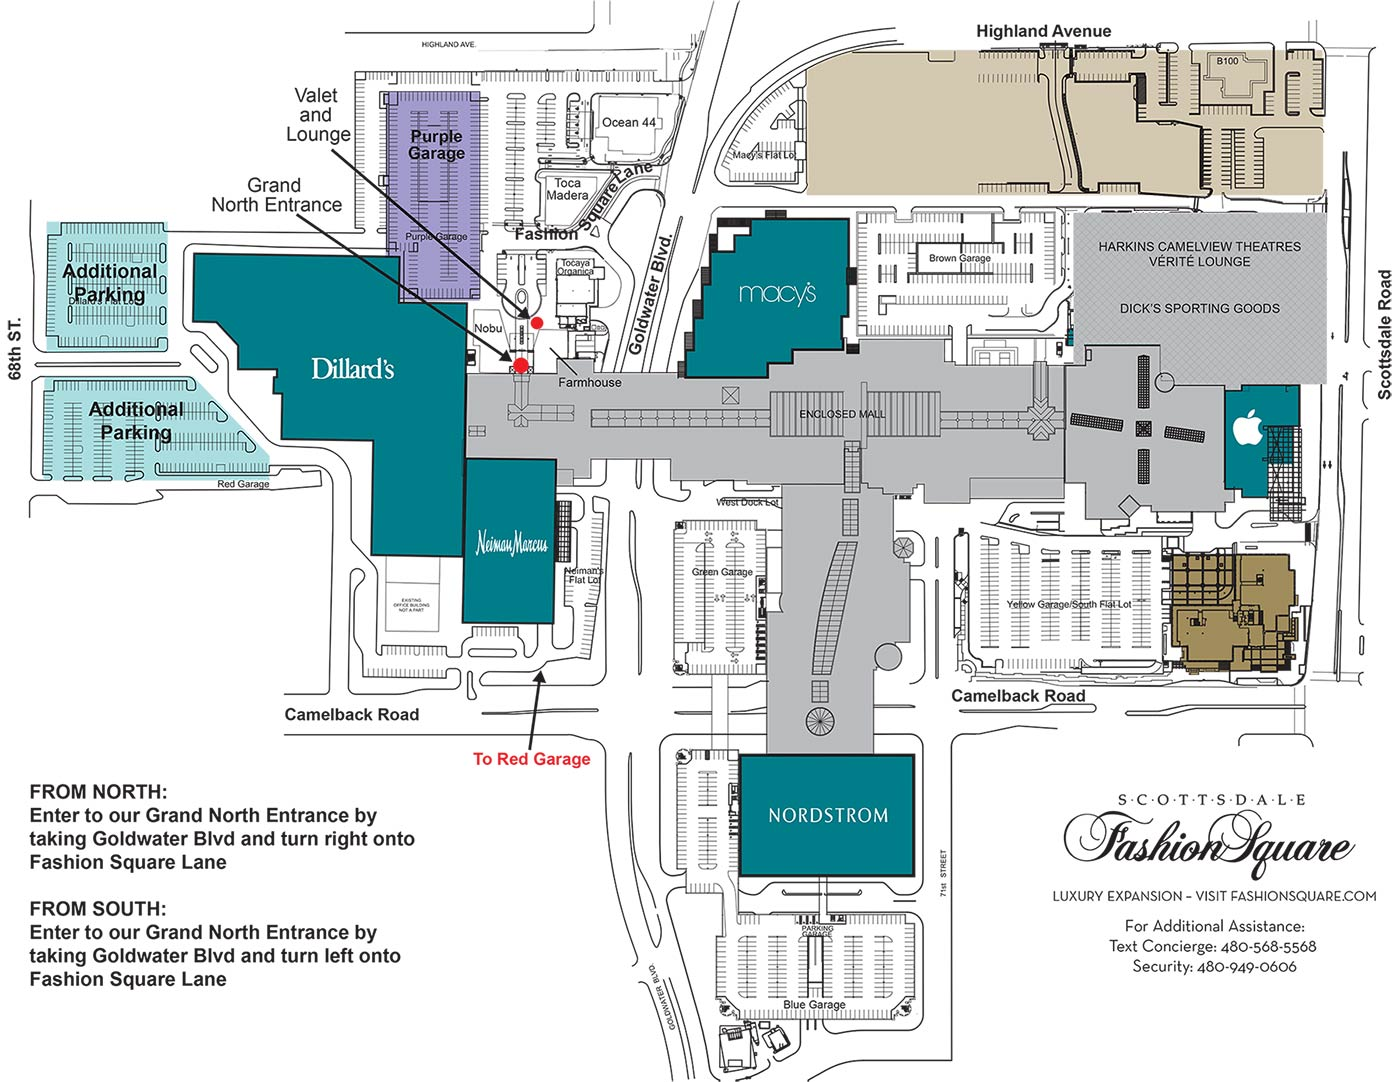 Shopping Malls Hotels Near Scottsdale Fashion Square